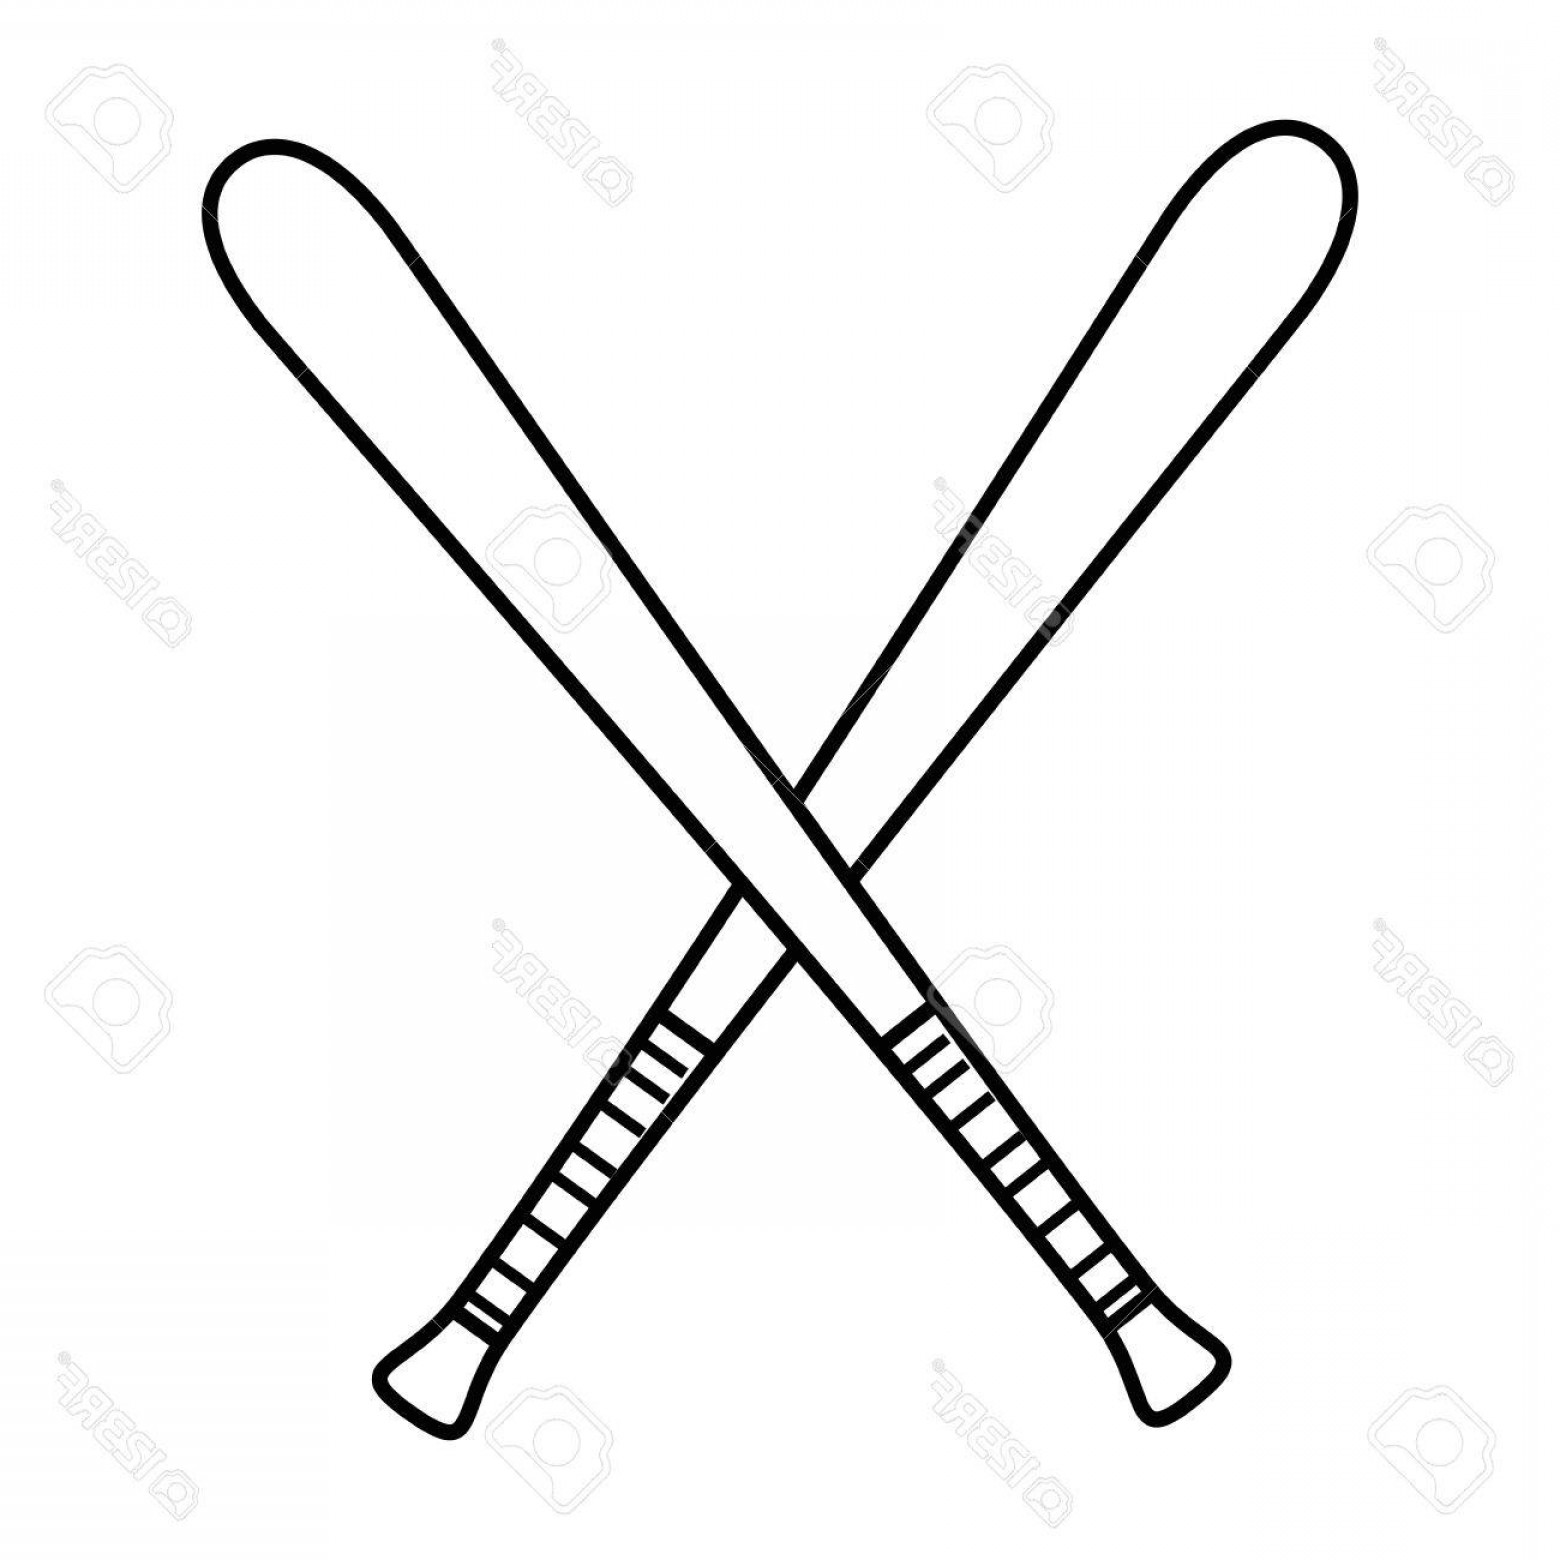 1560x1560 Photostock Vector Baseball Bats Crossed Icon Over White Background